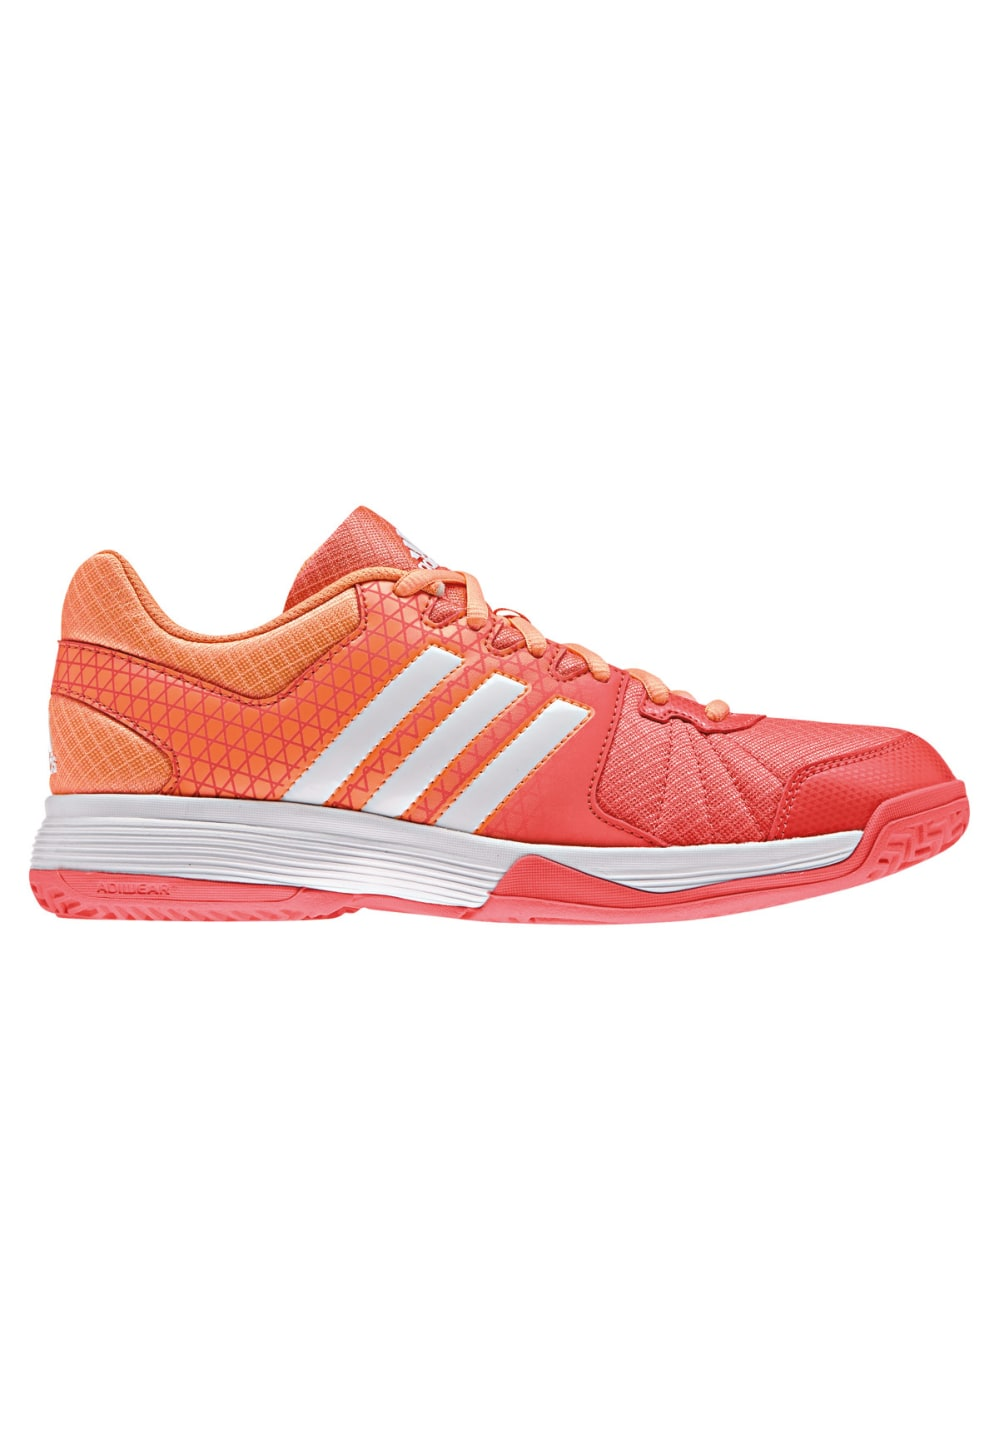 f2f5417a0458 adidas ligra 4 womens. adidas Ligra 4 - Volleyball shoes ...